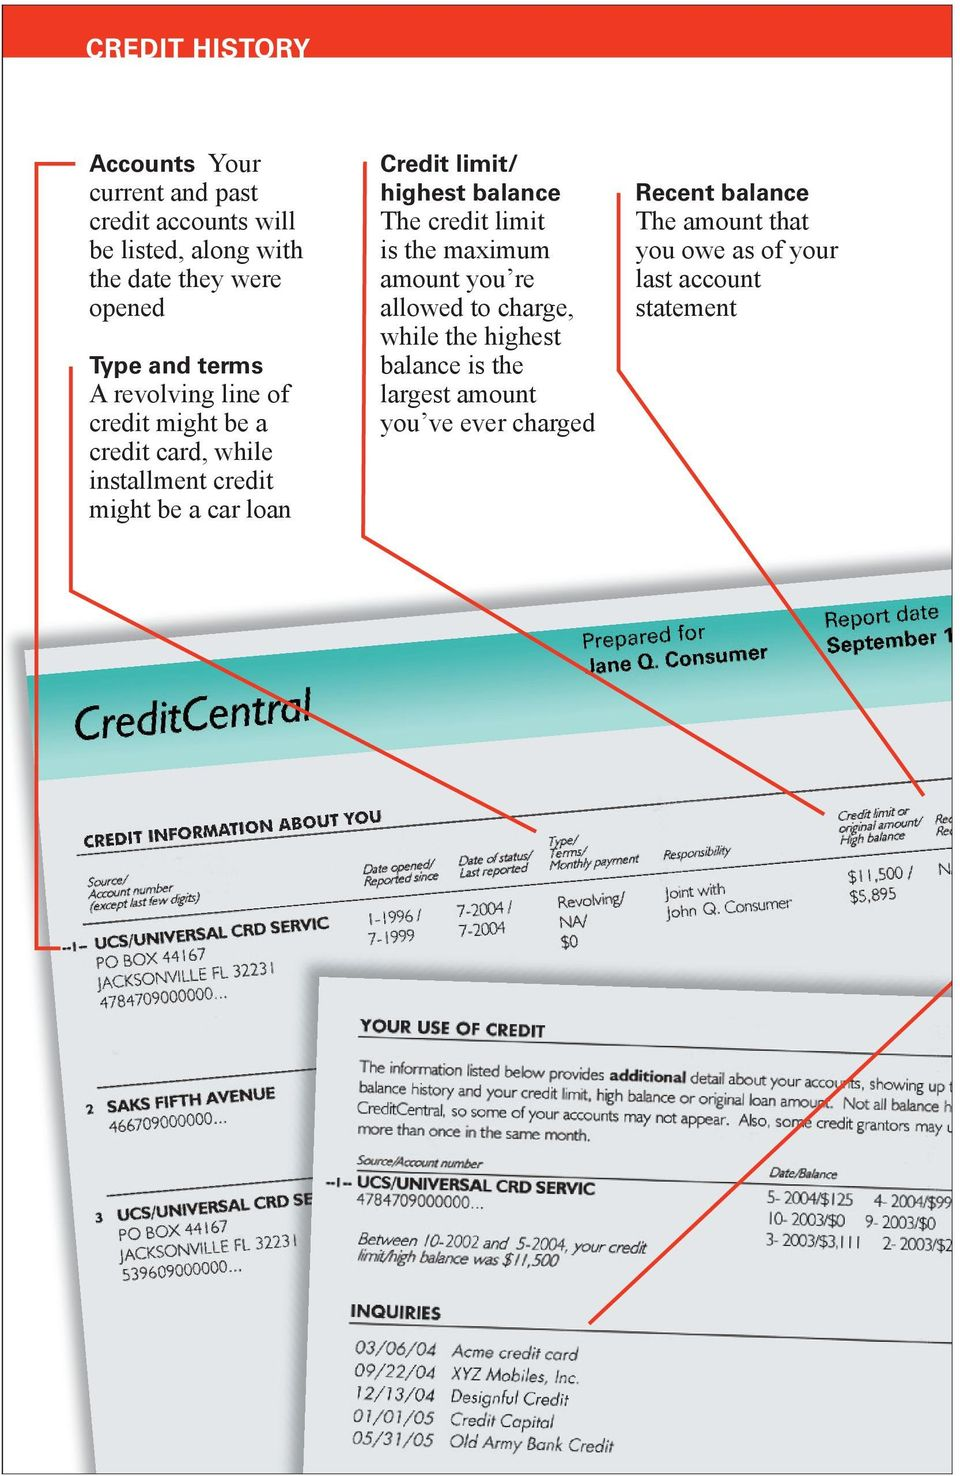 limit/ highest balance The credit limit is the maximum amount you re allowed to charge, while the highest